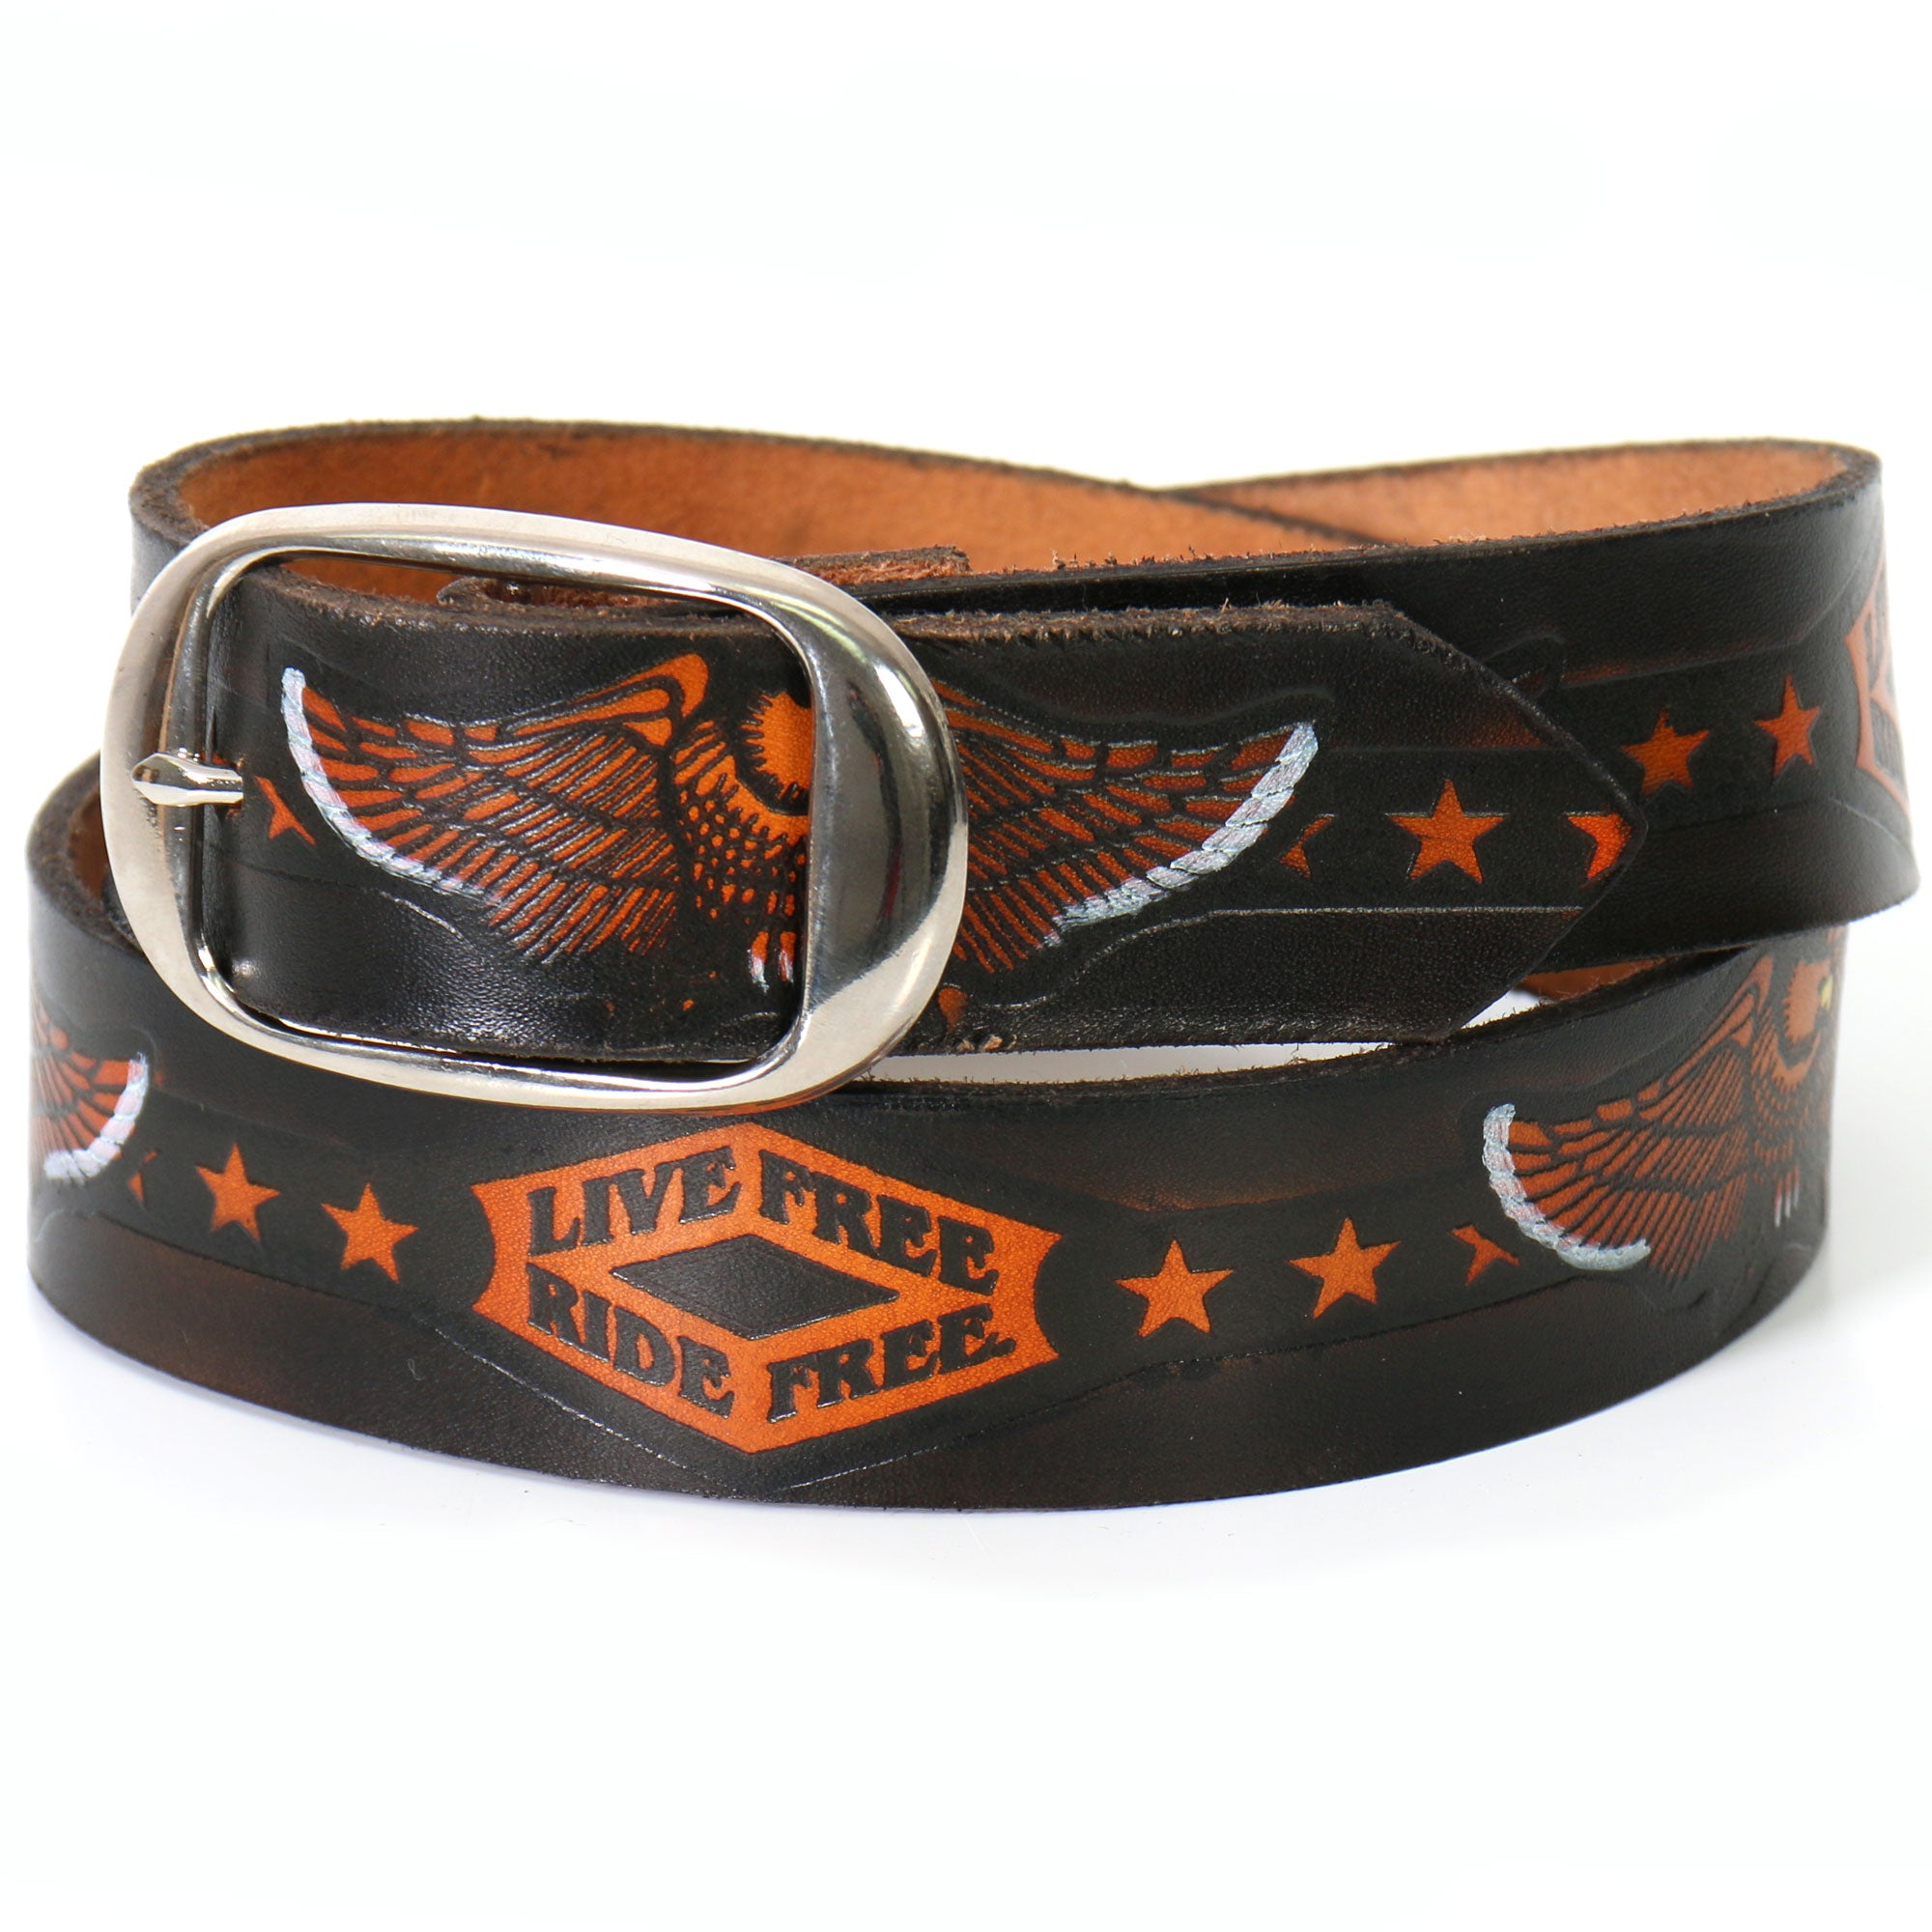 Hot Leathers Live Free, Ride Free Embossed Leather Belt